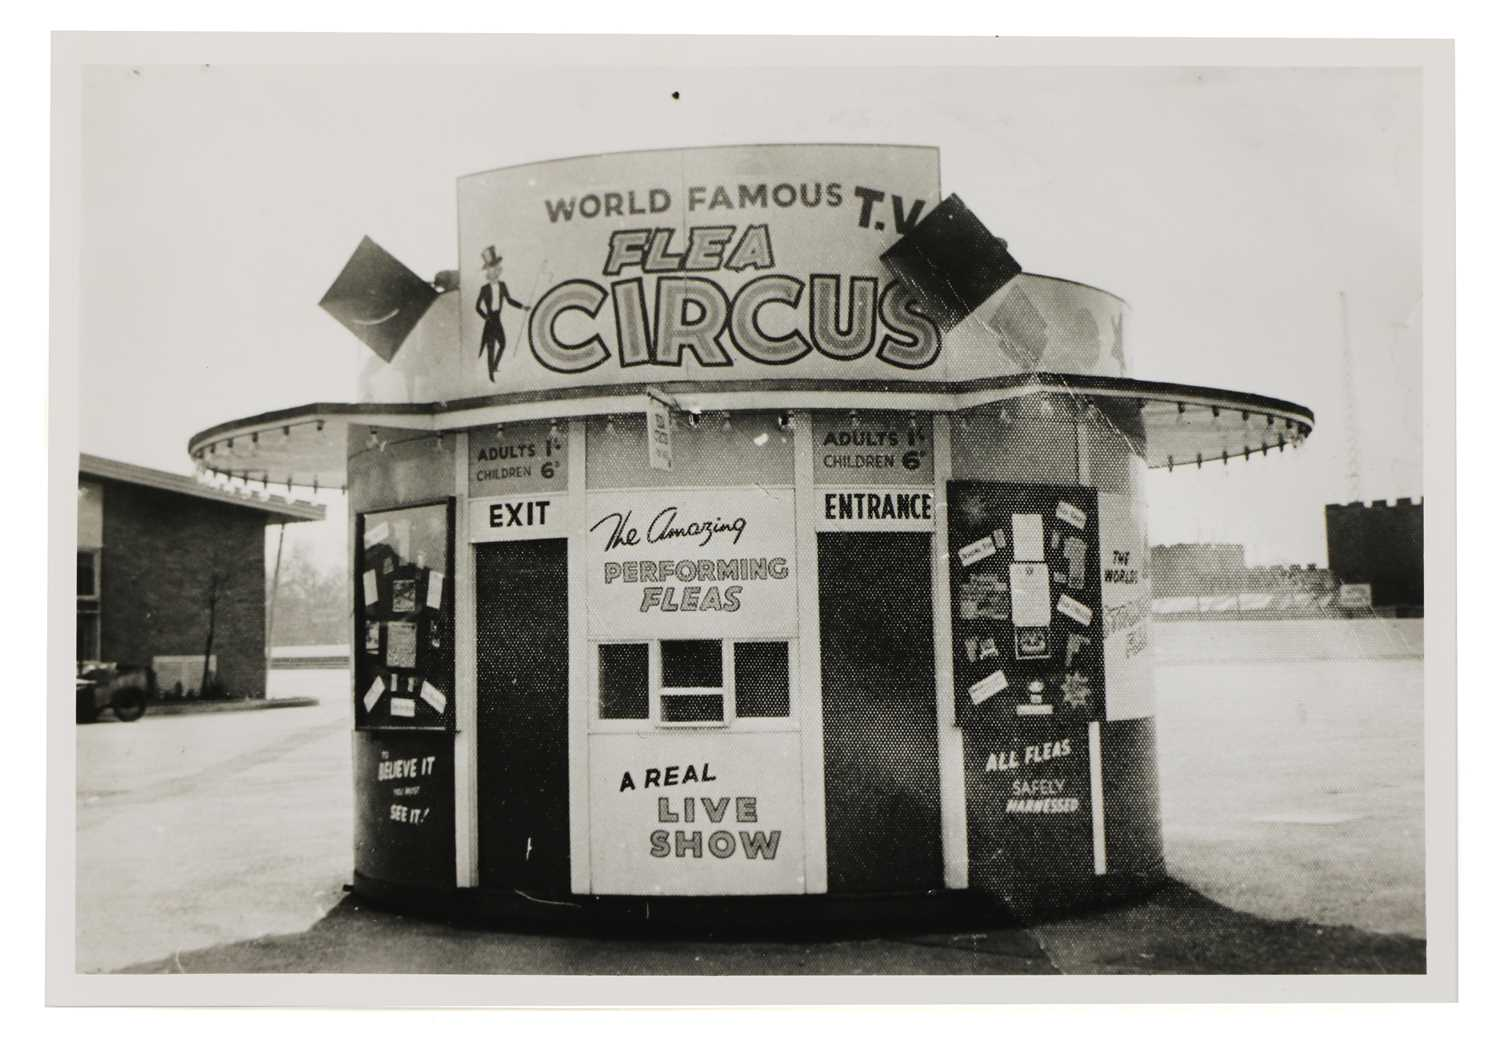 THE WORLD FAMOUS FLEA CIRCUS, - Image 3 of 8